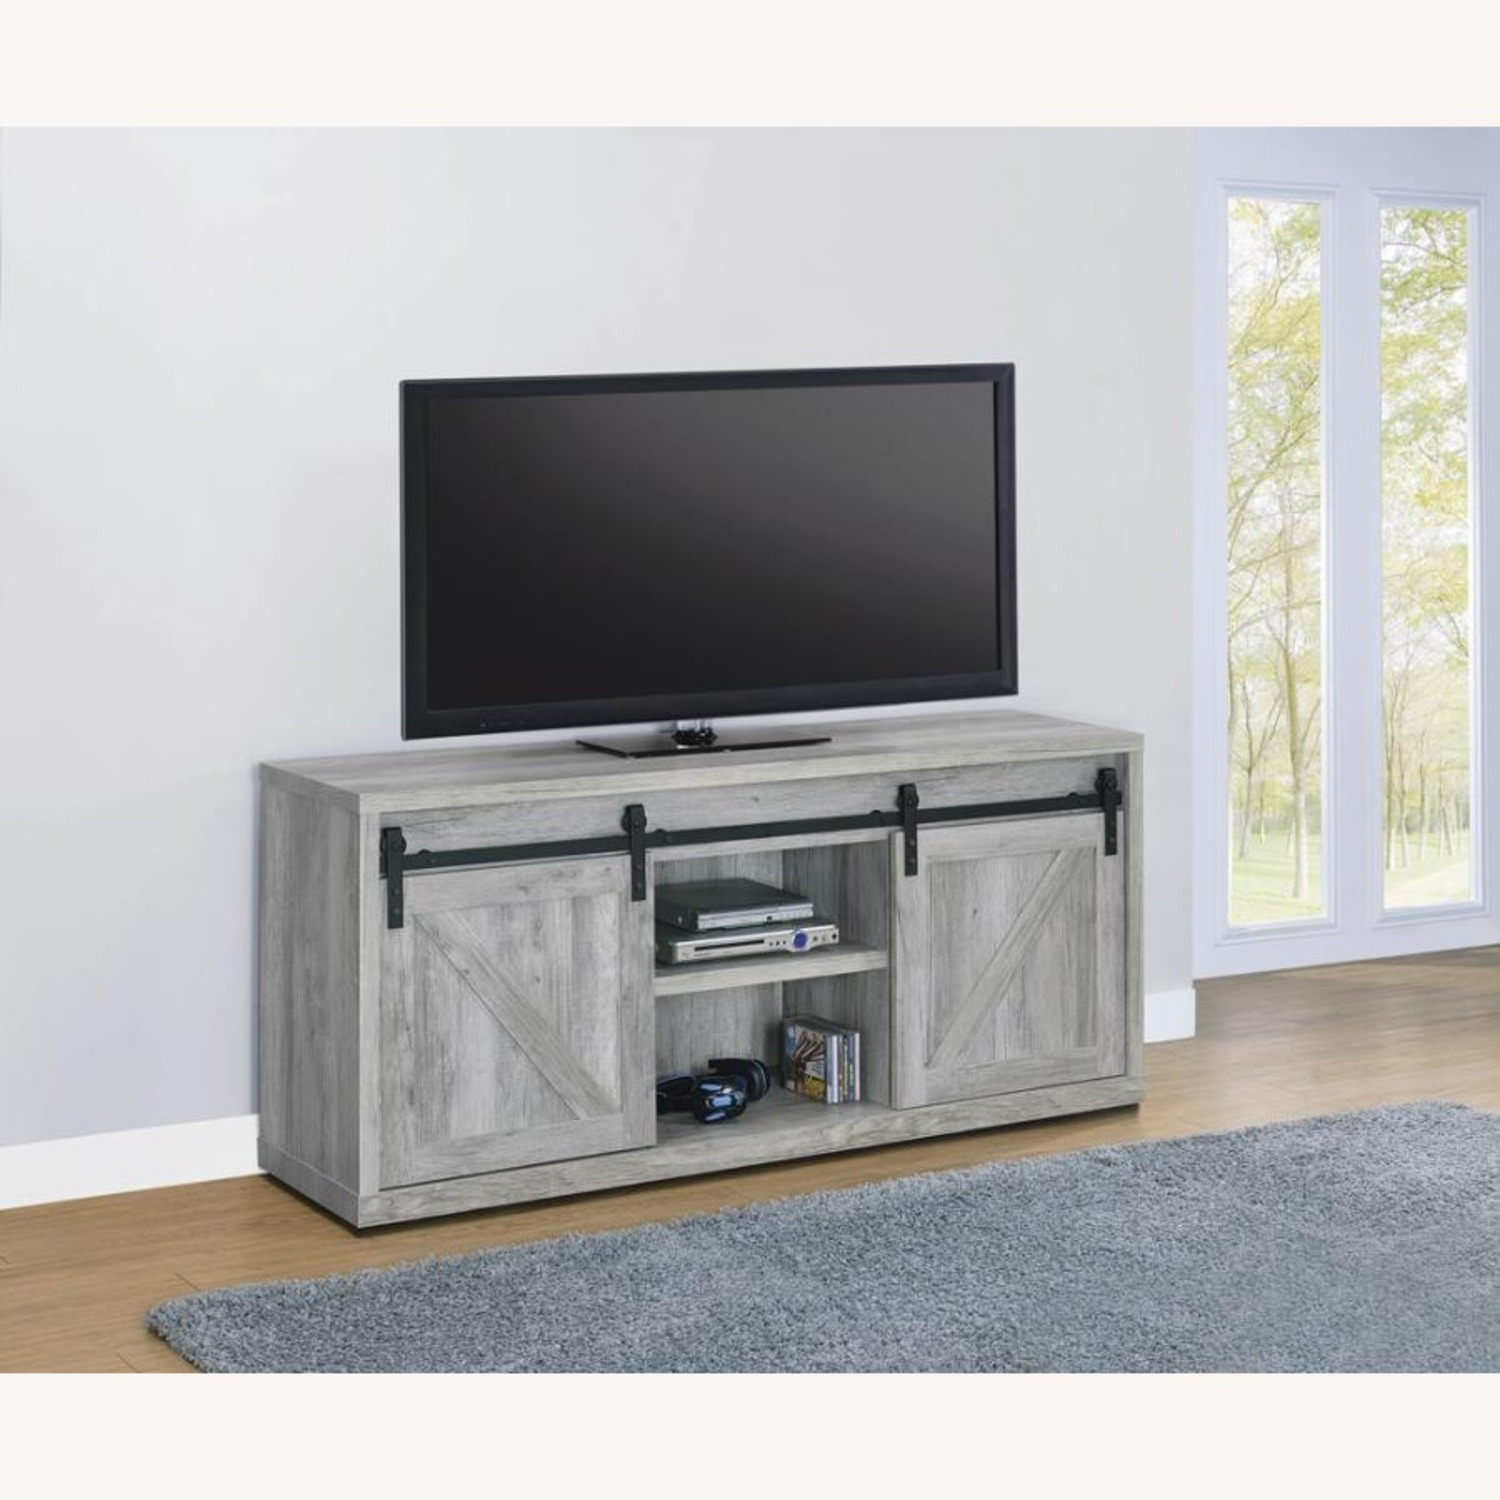 59-Inch TV Console In Grey Driftwood Finish - image-2